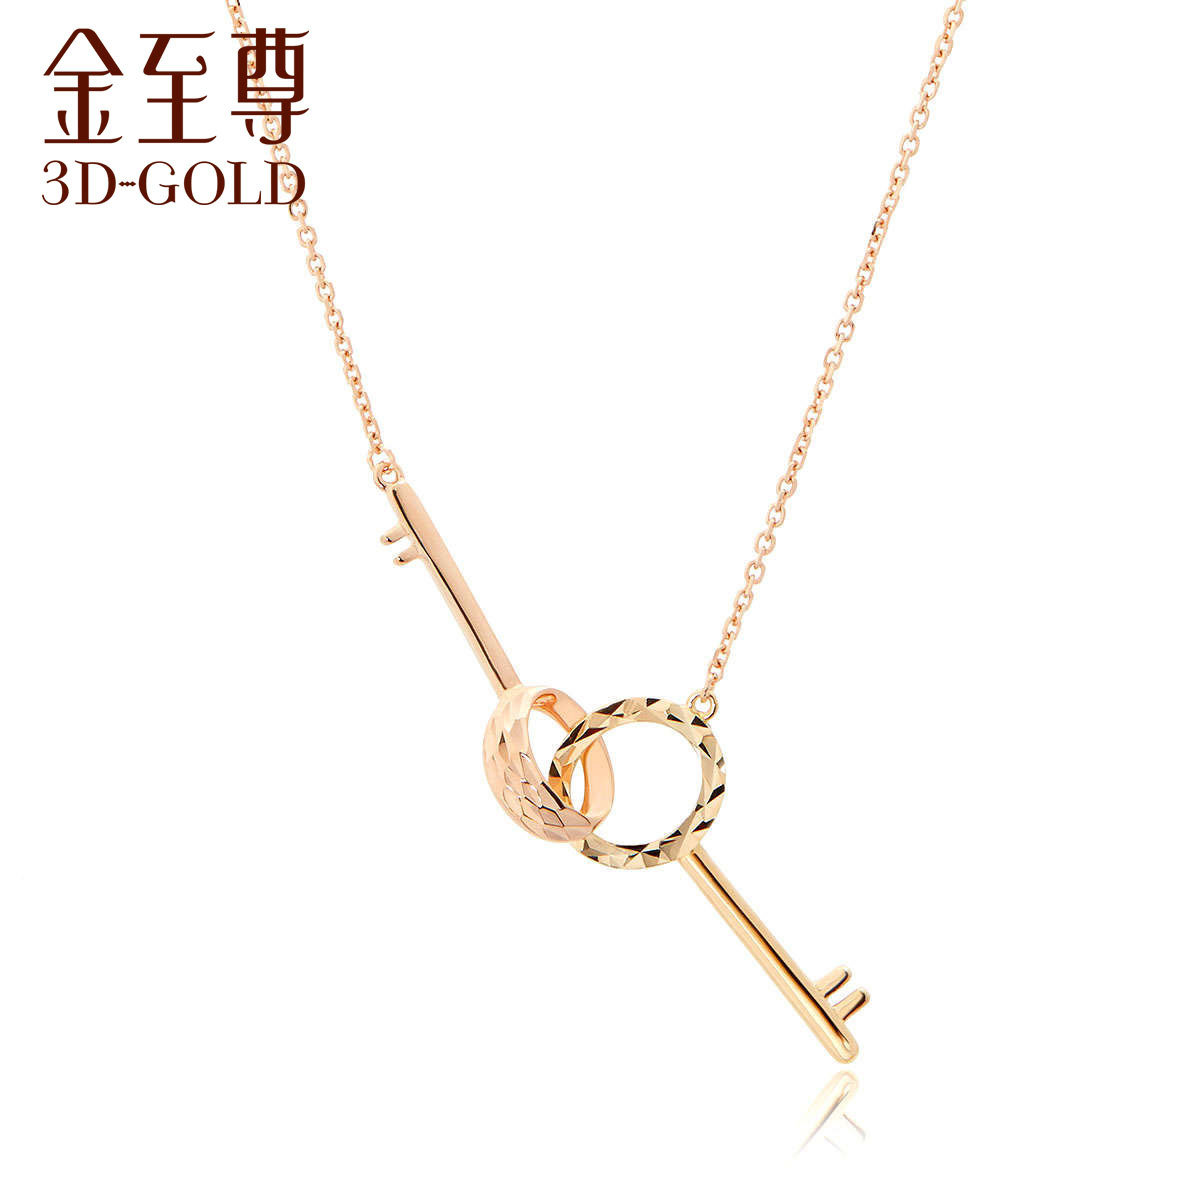 18K Bi-Color Gold Necklace